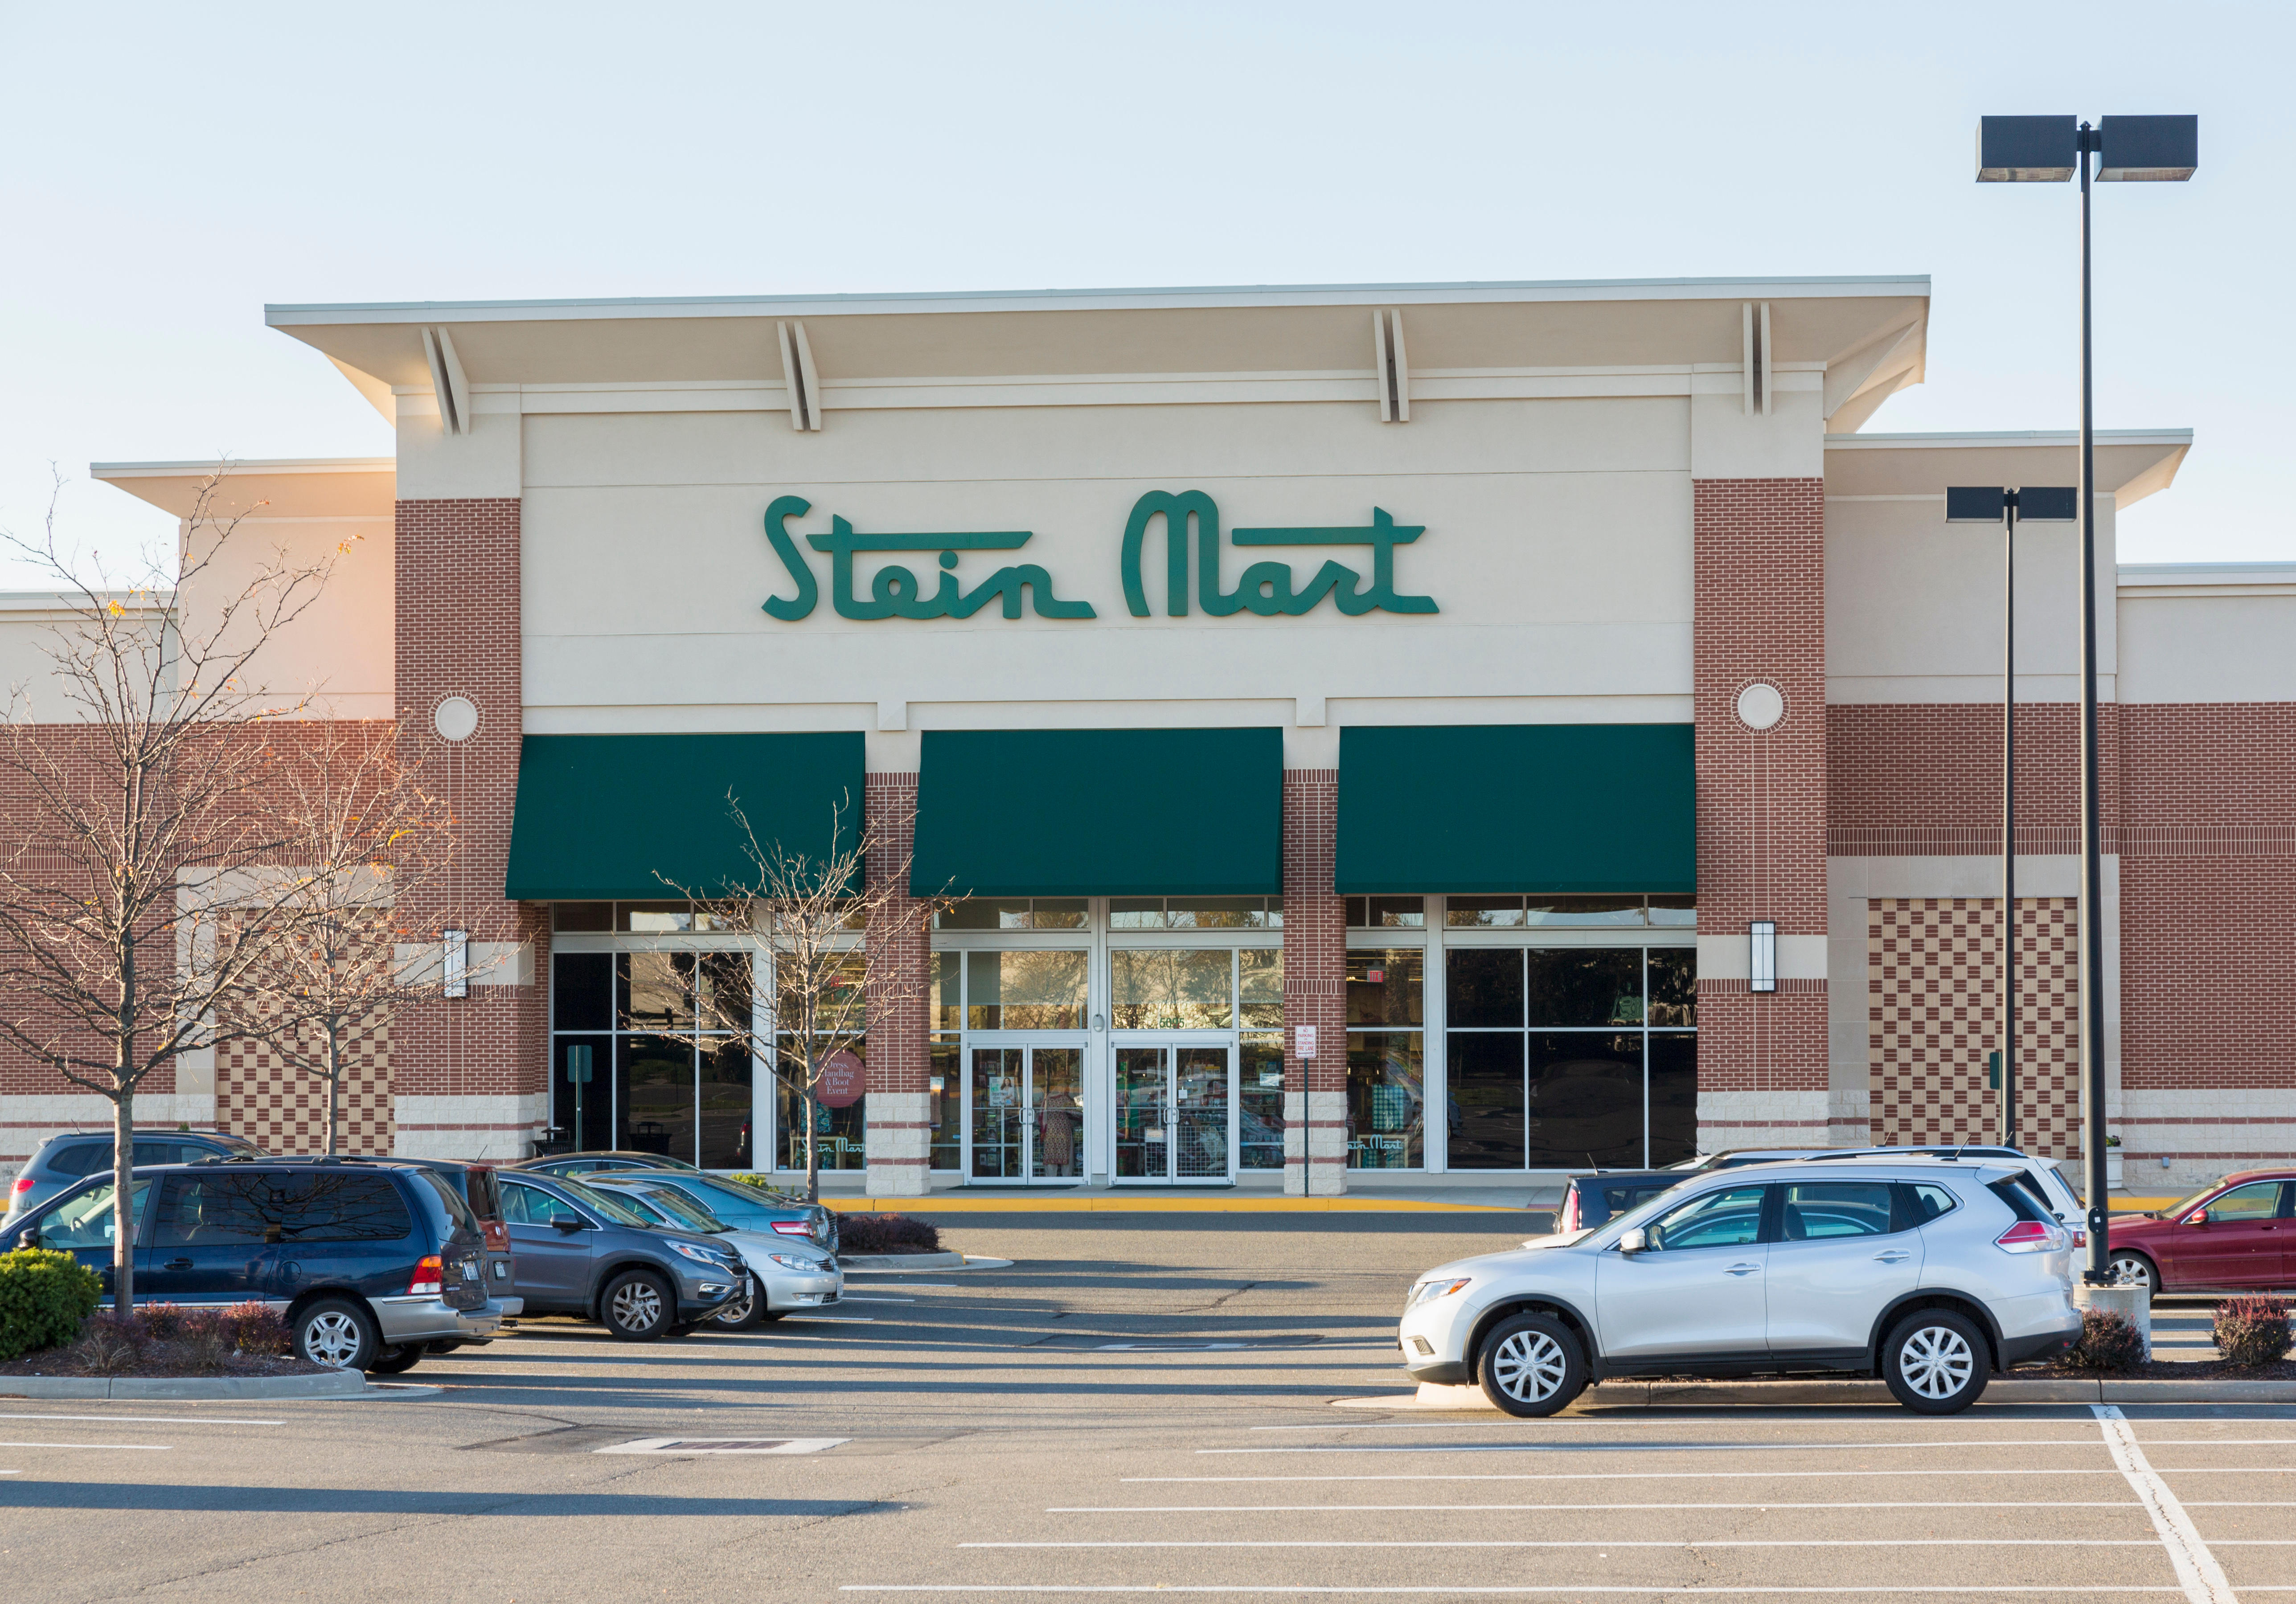 Entrance to SteinMart store or superstore in Virginia Gateway Shopping Center, Gainesville, Virginia, USA